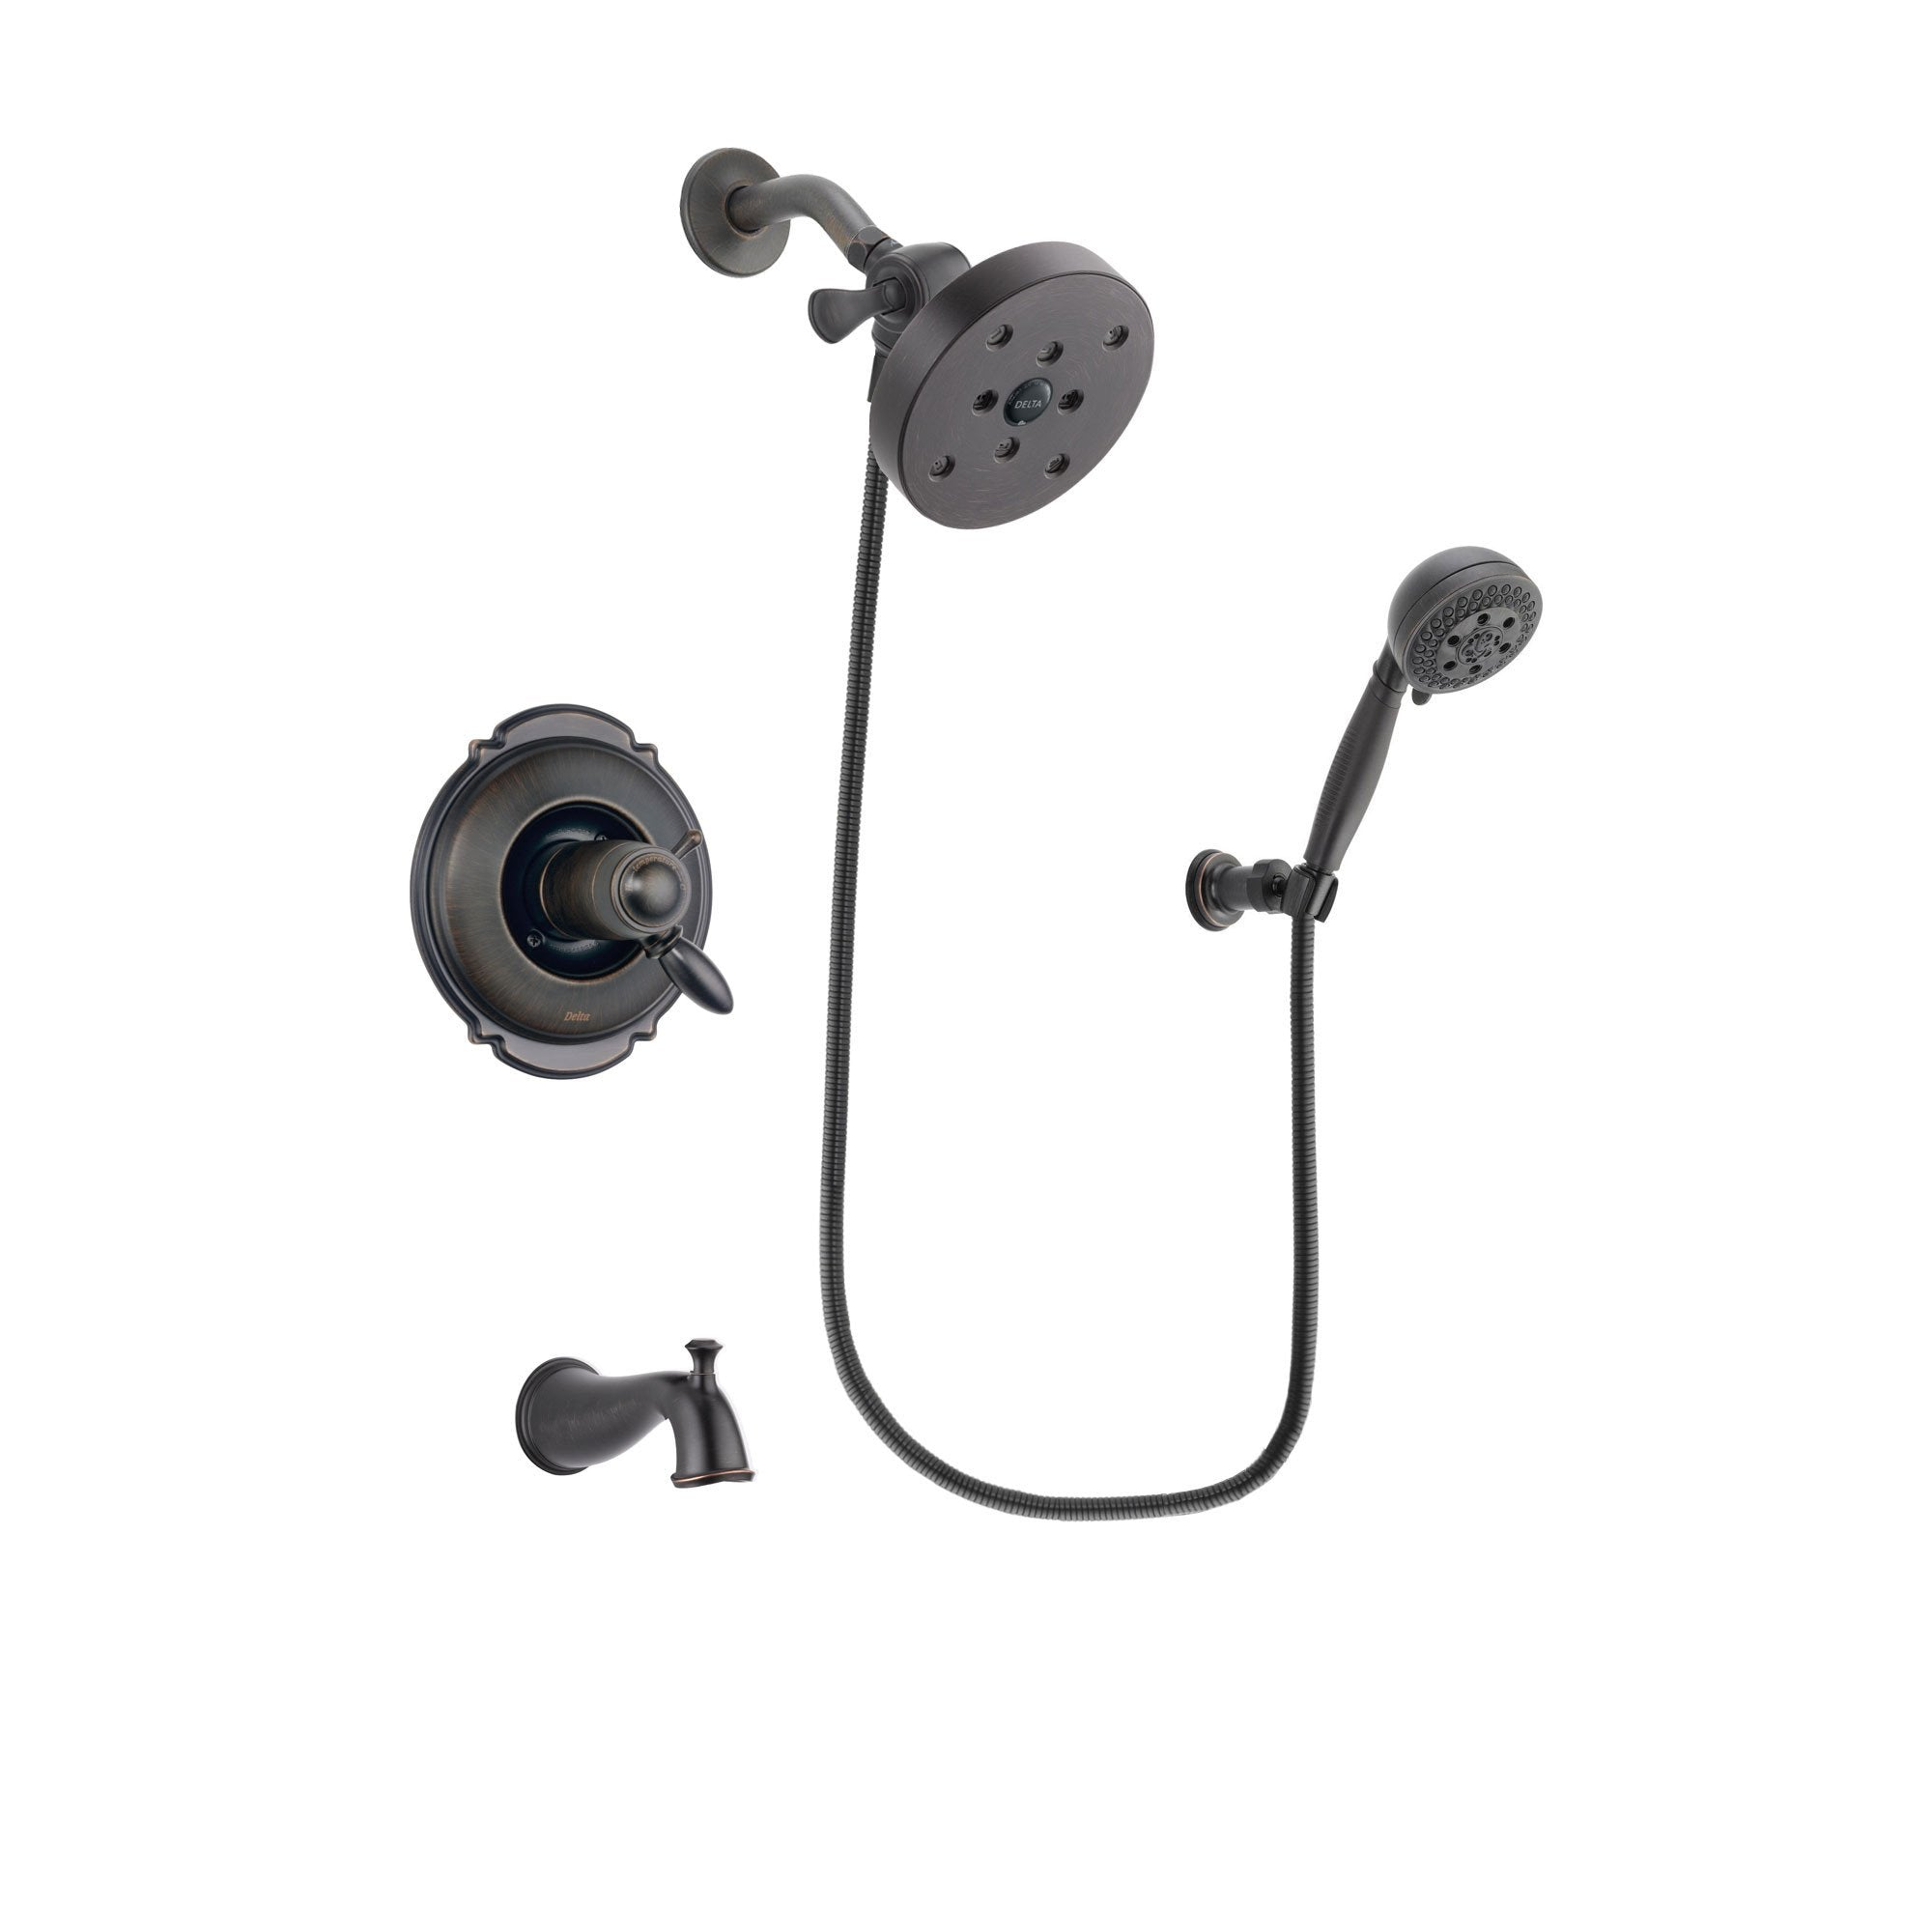 Delta Victorian Venetian Bronze Finish Thermostatic Tub and Shower Faucet System Package with 5-1/2 inch Showerhead and 5-Setting Wall Mount Personal Handheld Shower Spray Includes Rough-in Valve and Tub Spout DSP2833V